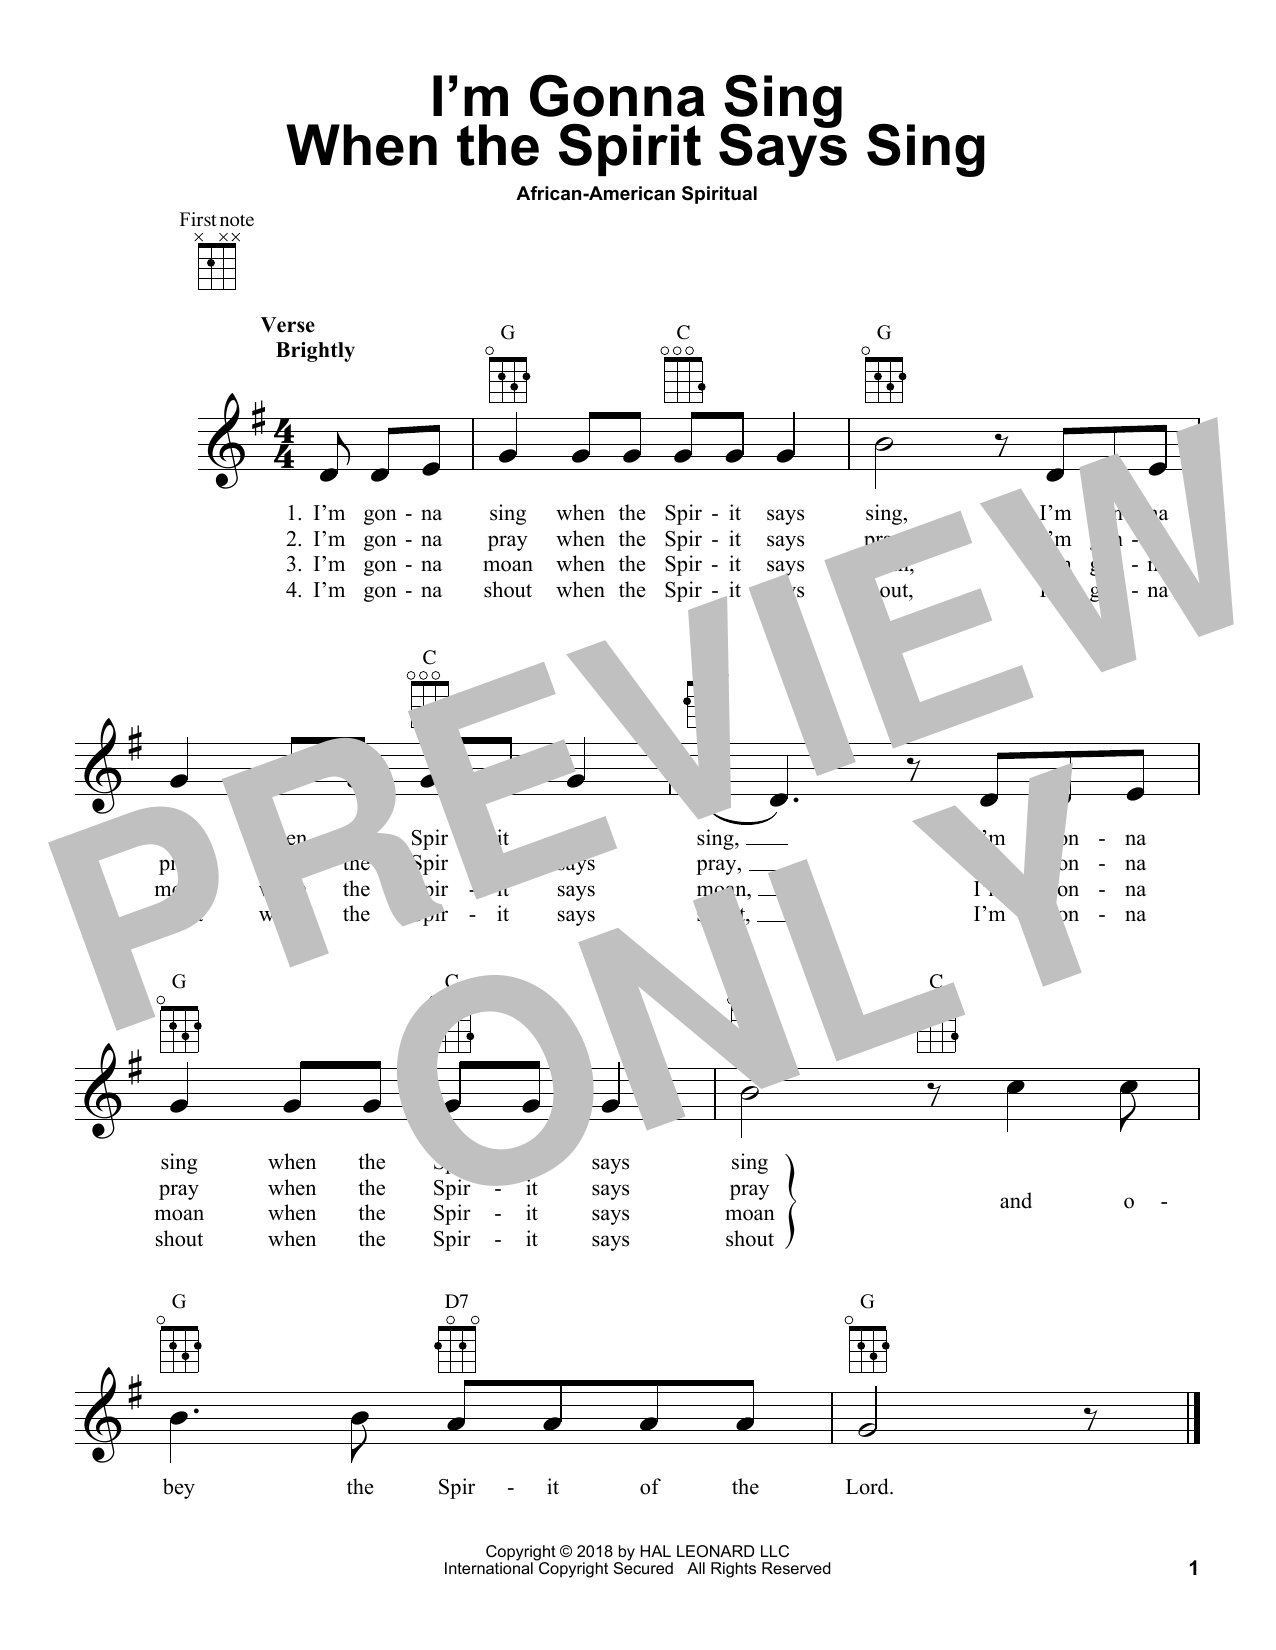 African-American Spiritual I'm Gonna Sing When The Spirit Says Sing sheet music notes and chords. Download Printable PDF.